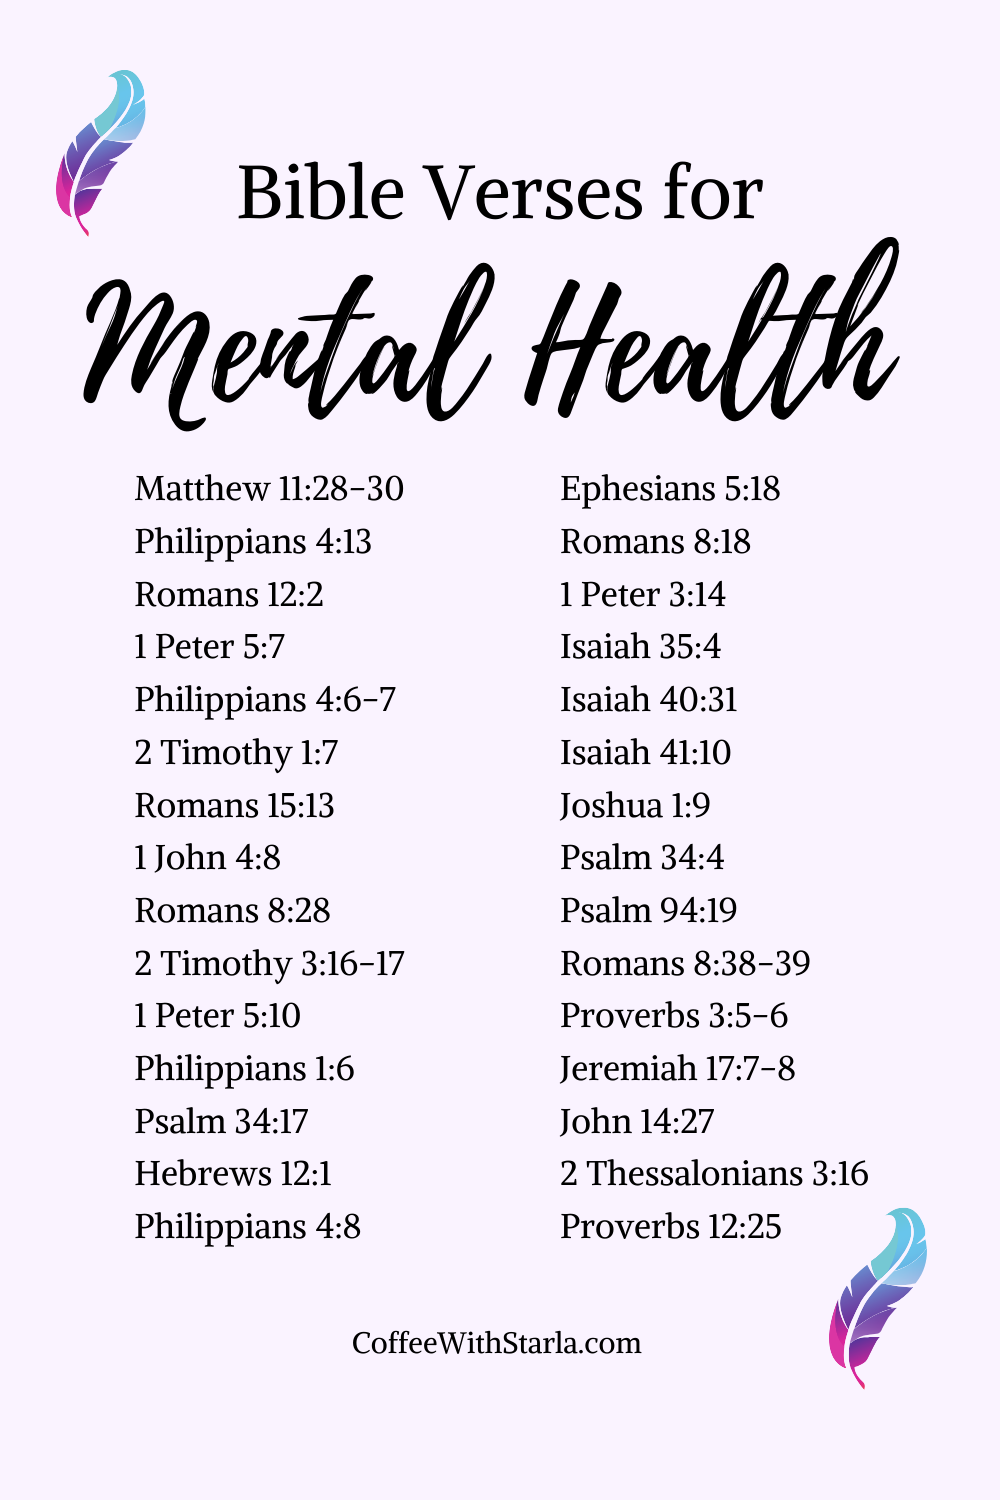 Bible Verses for Mental Health ~ Coffee With Starla